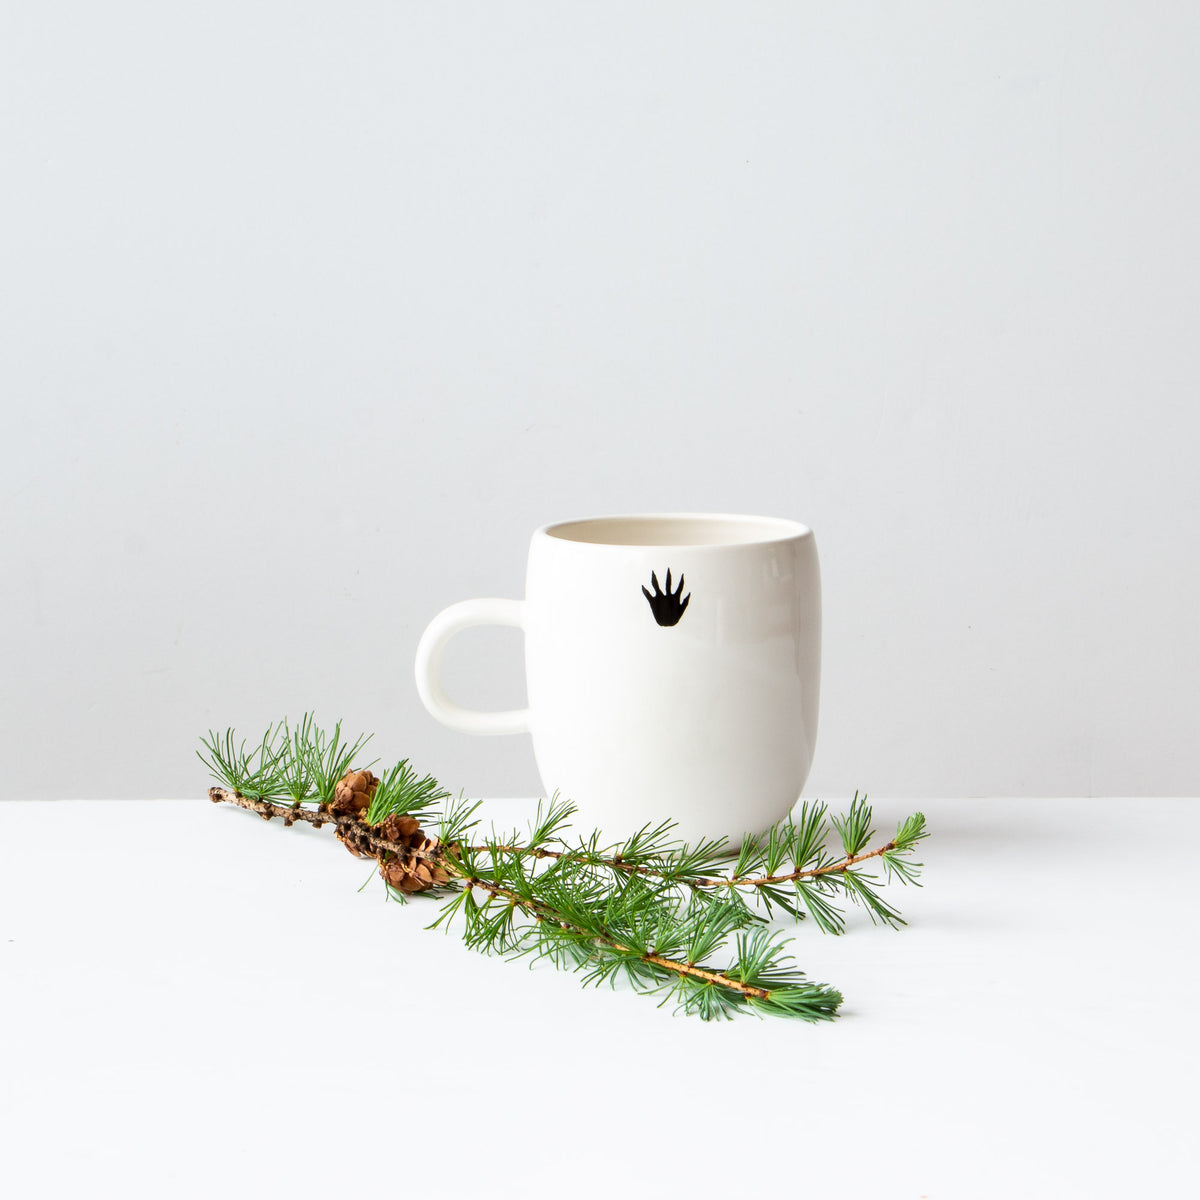 Rear View - Raccoon - Handmade Porcelain Coffee Mug / Cup - Sold by Chic & Basta